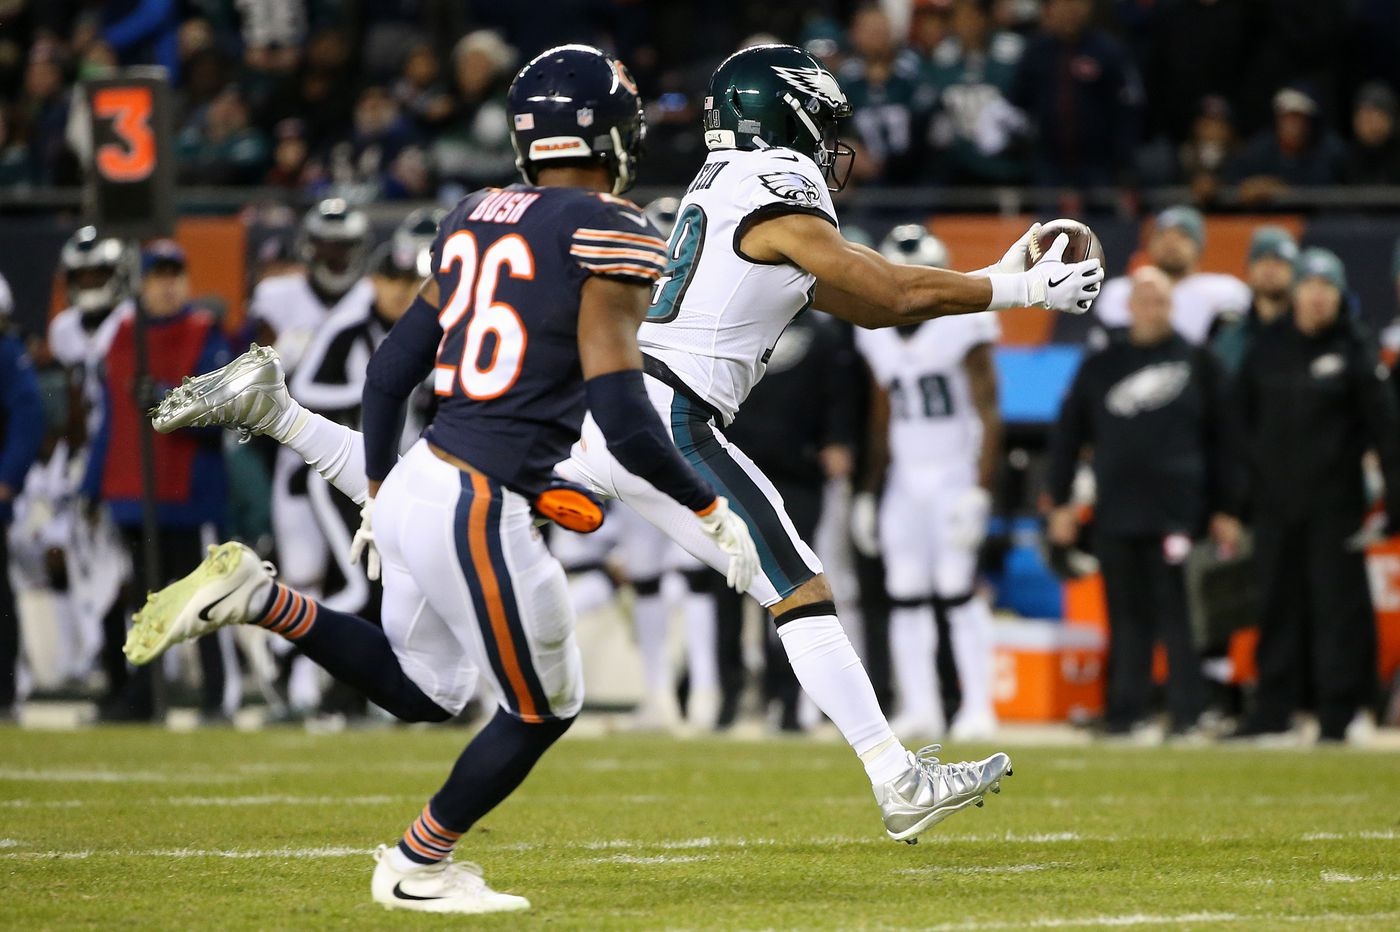 Nick Foles, Golden Tate trending up; Eagles corners trending down following playoff win over Bears